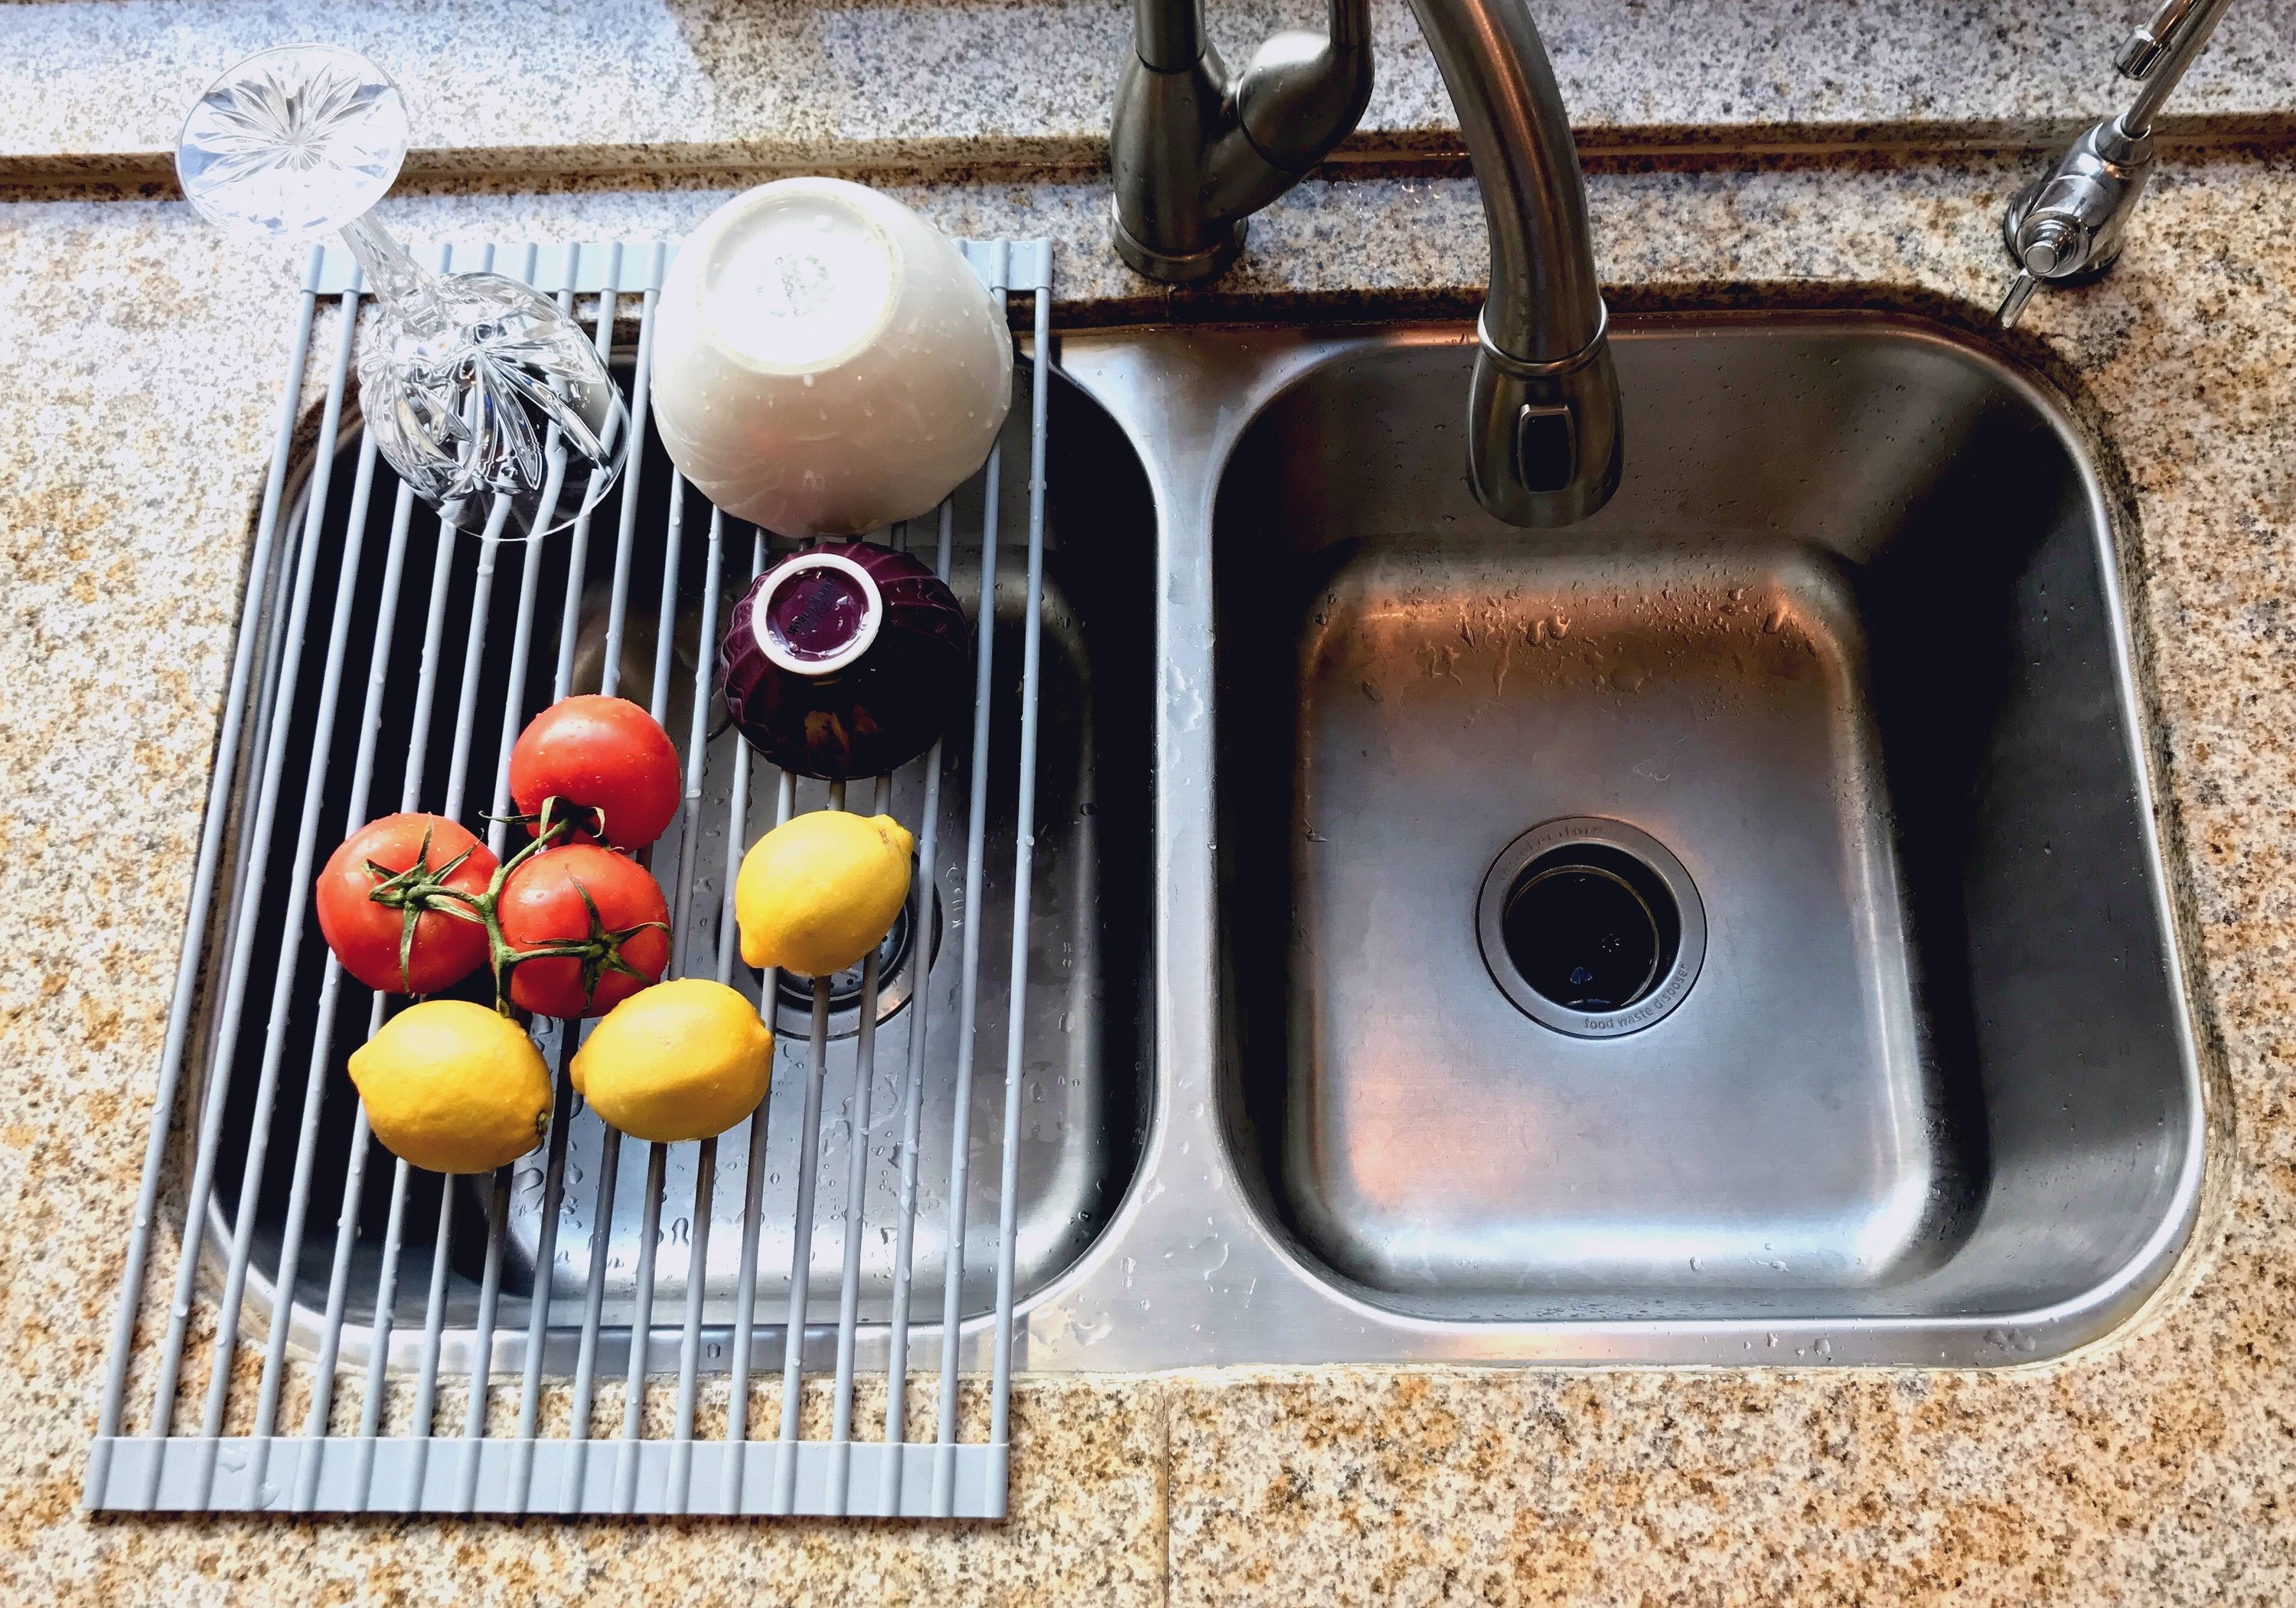 A grated gray drying rack over a sink